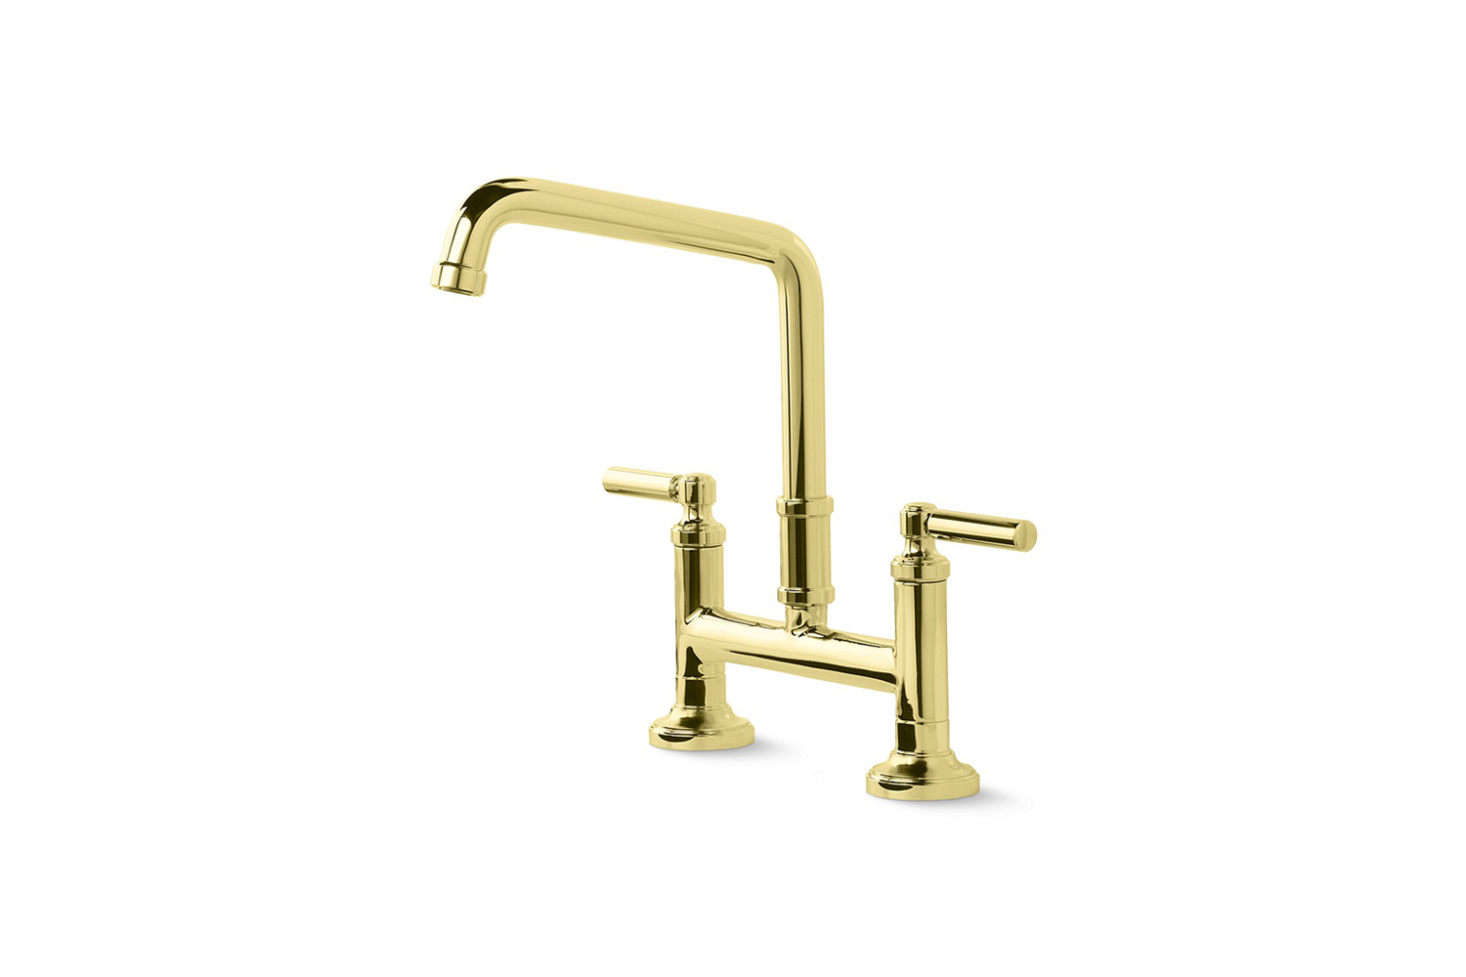 Campo Three Leg Bridge Kitchen Faucet